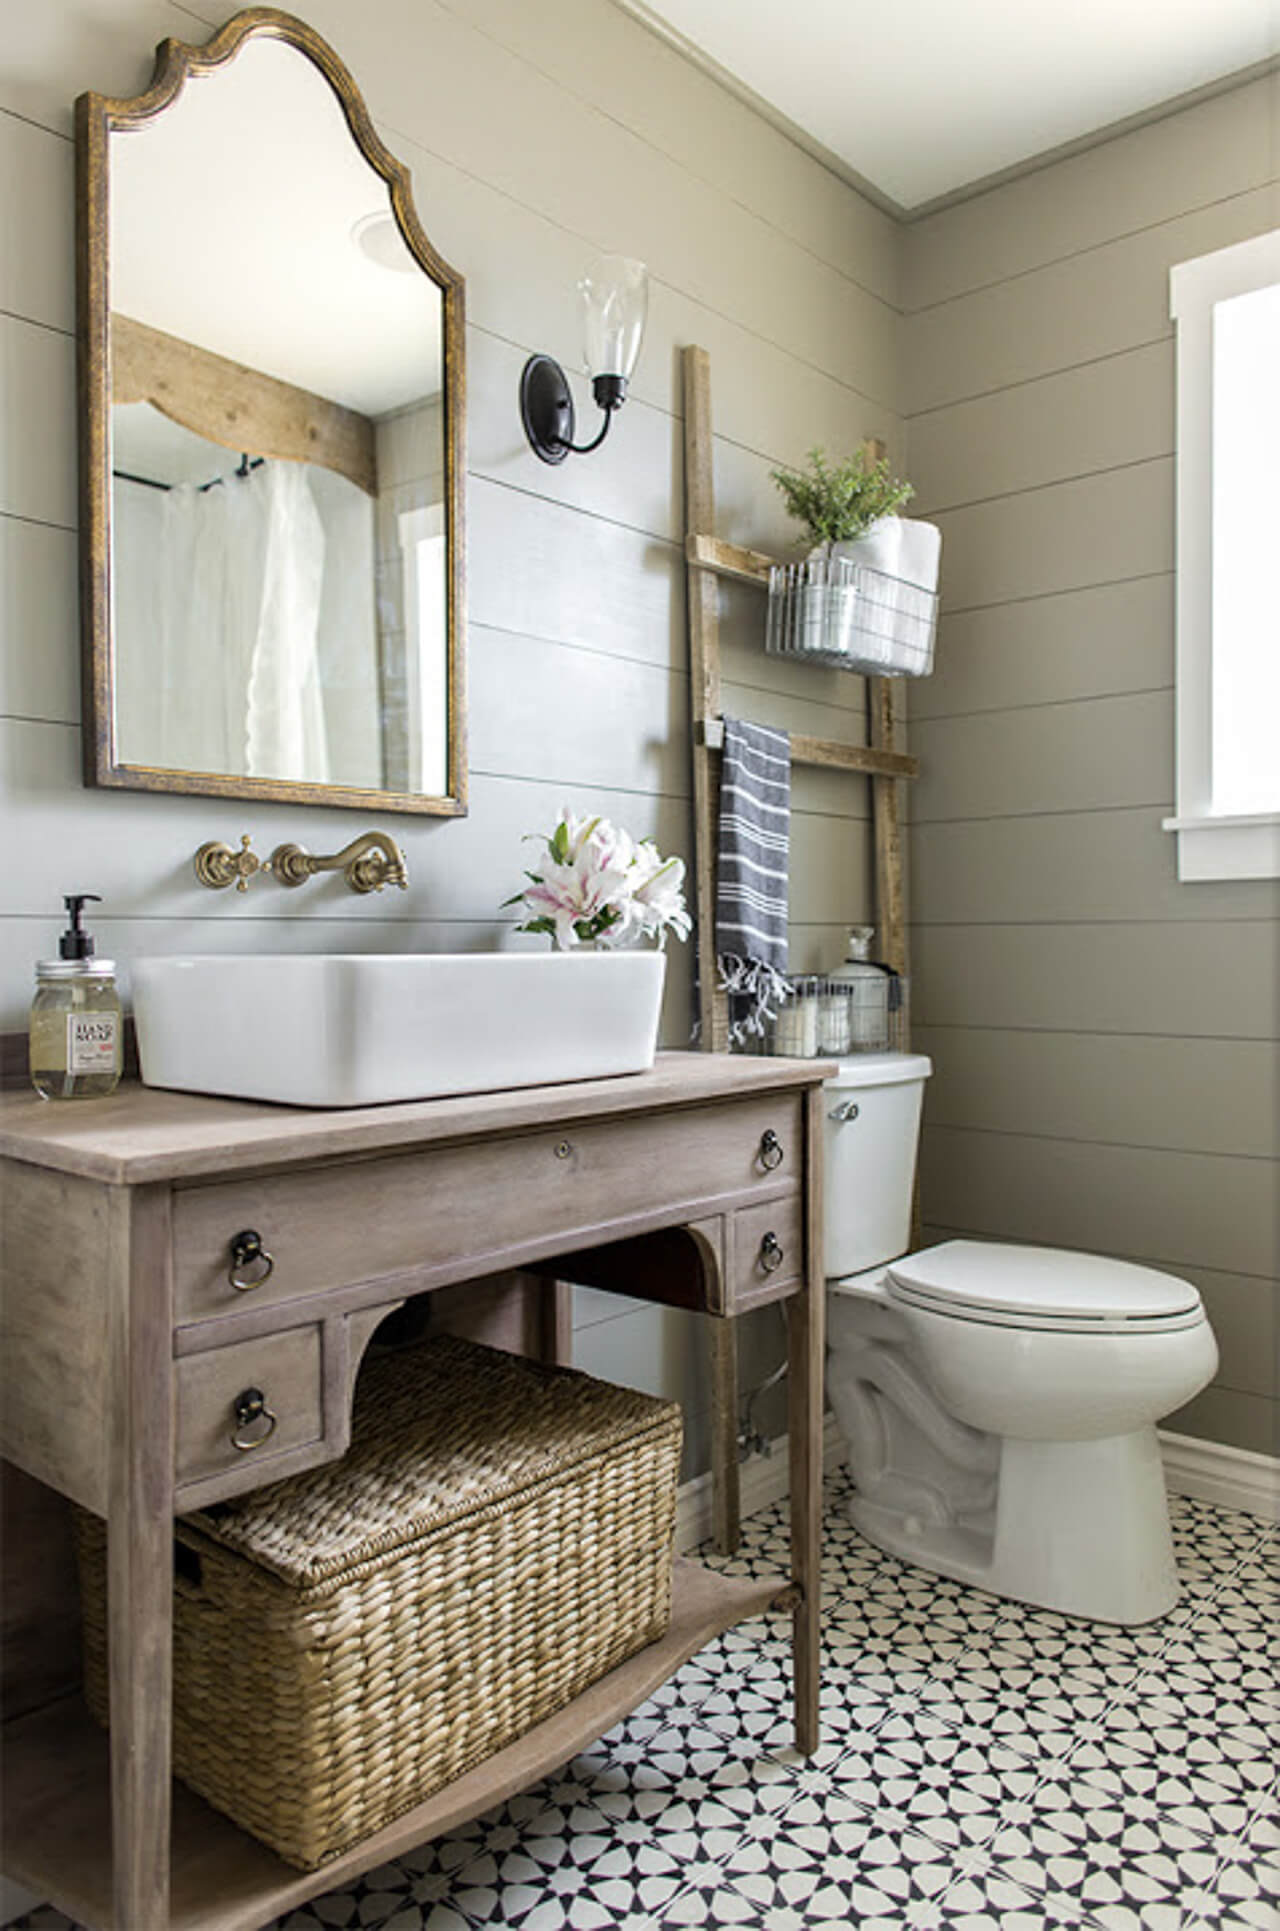 This rustic bathroom inspiration is so cute! - M Loves M @marmar